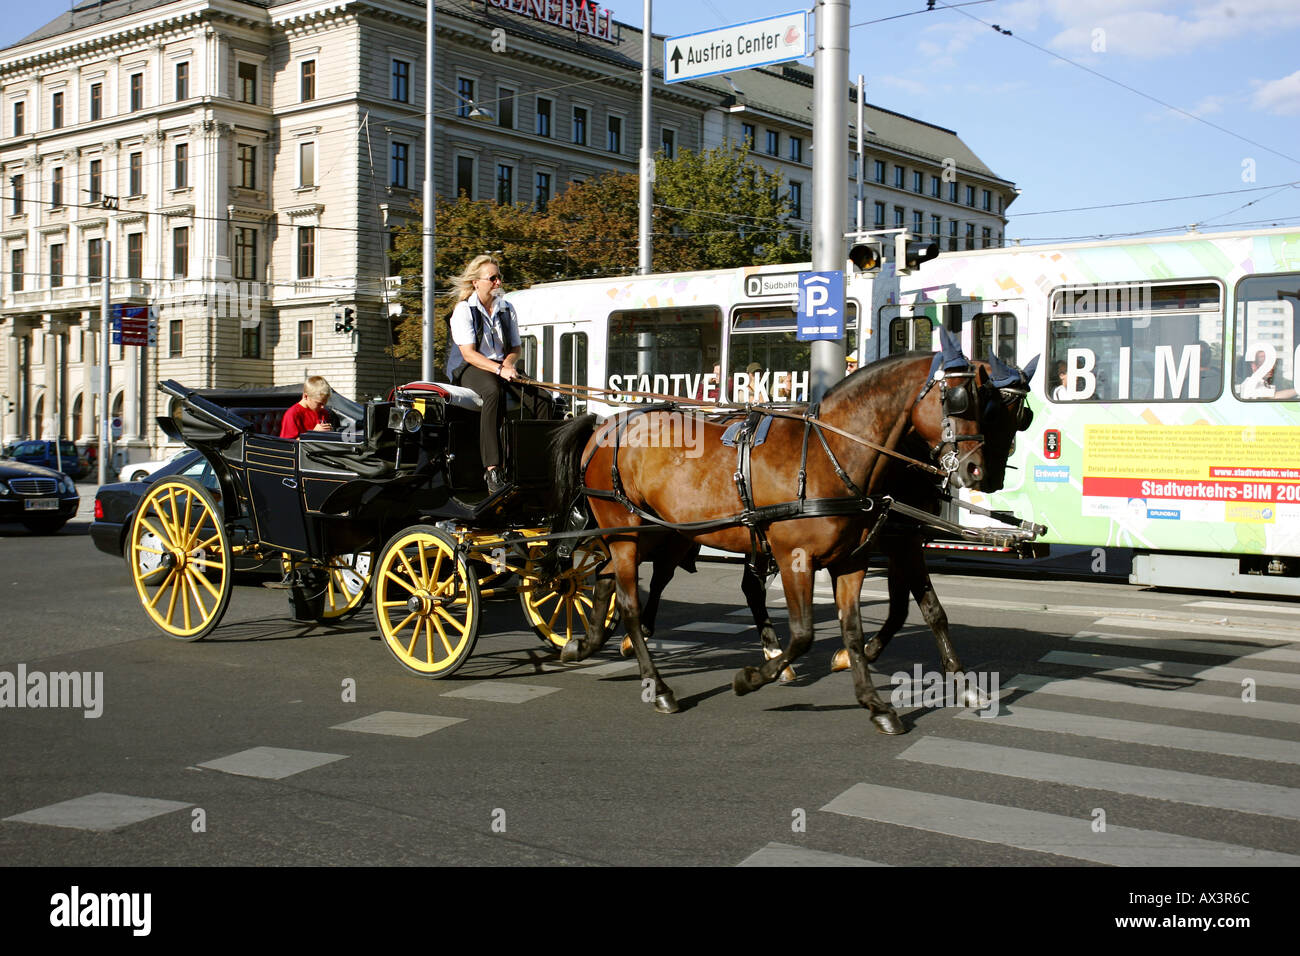 Horse and Cart in Vienna, Austria - Stock Image